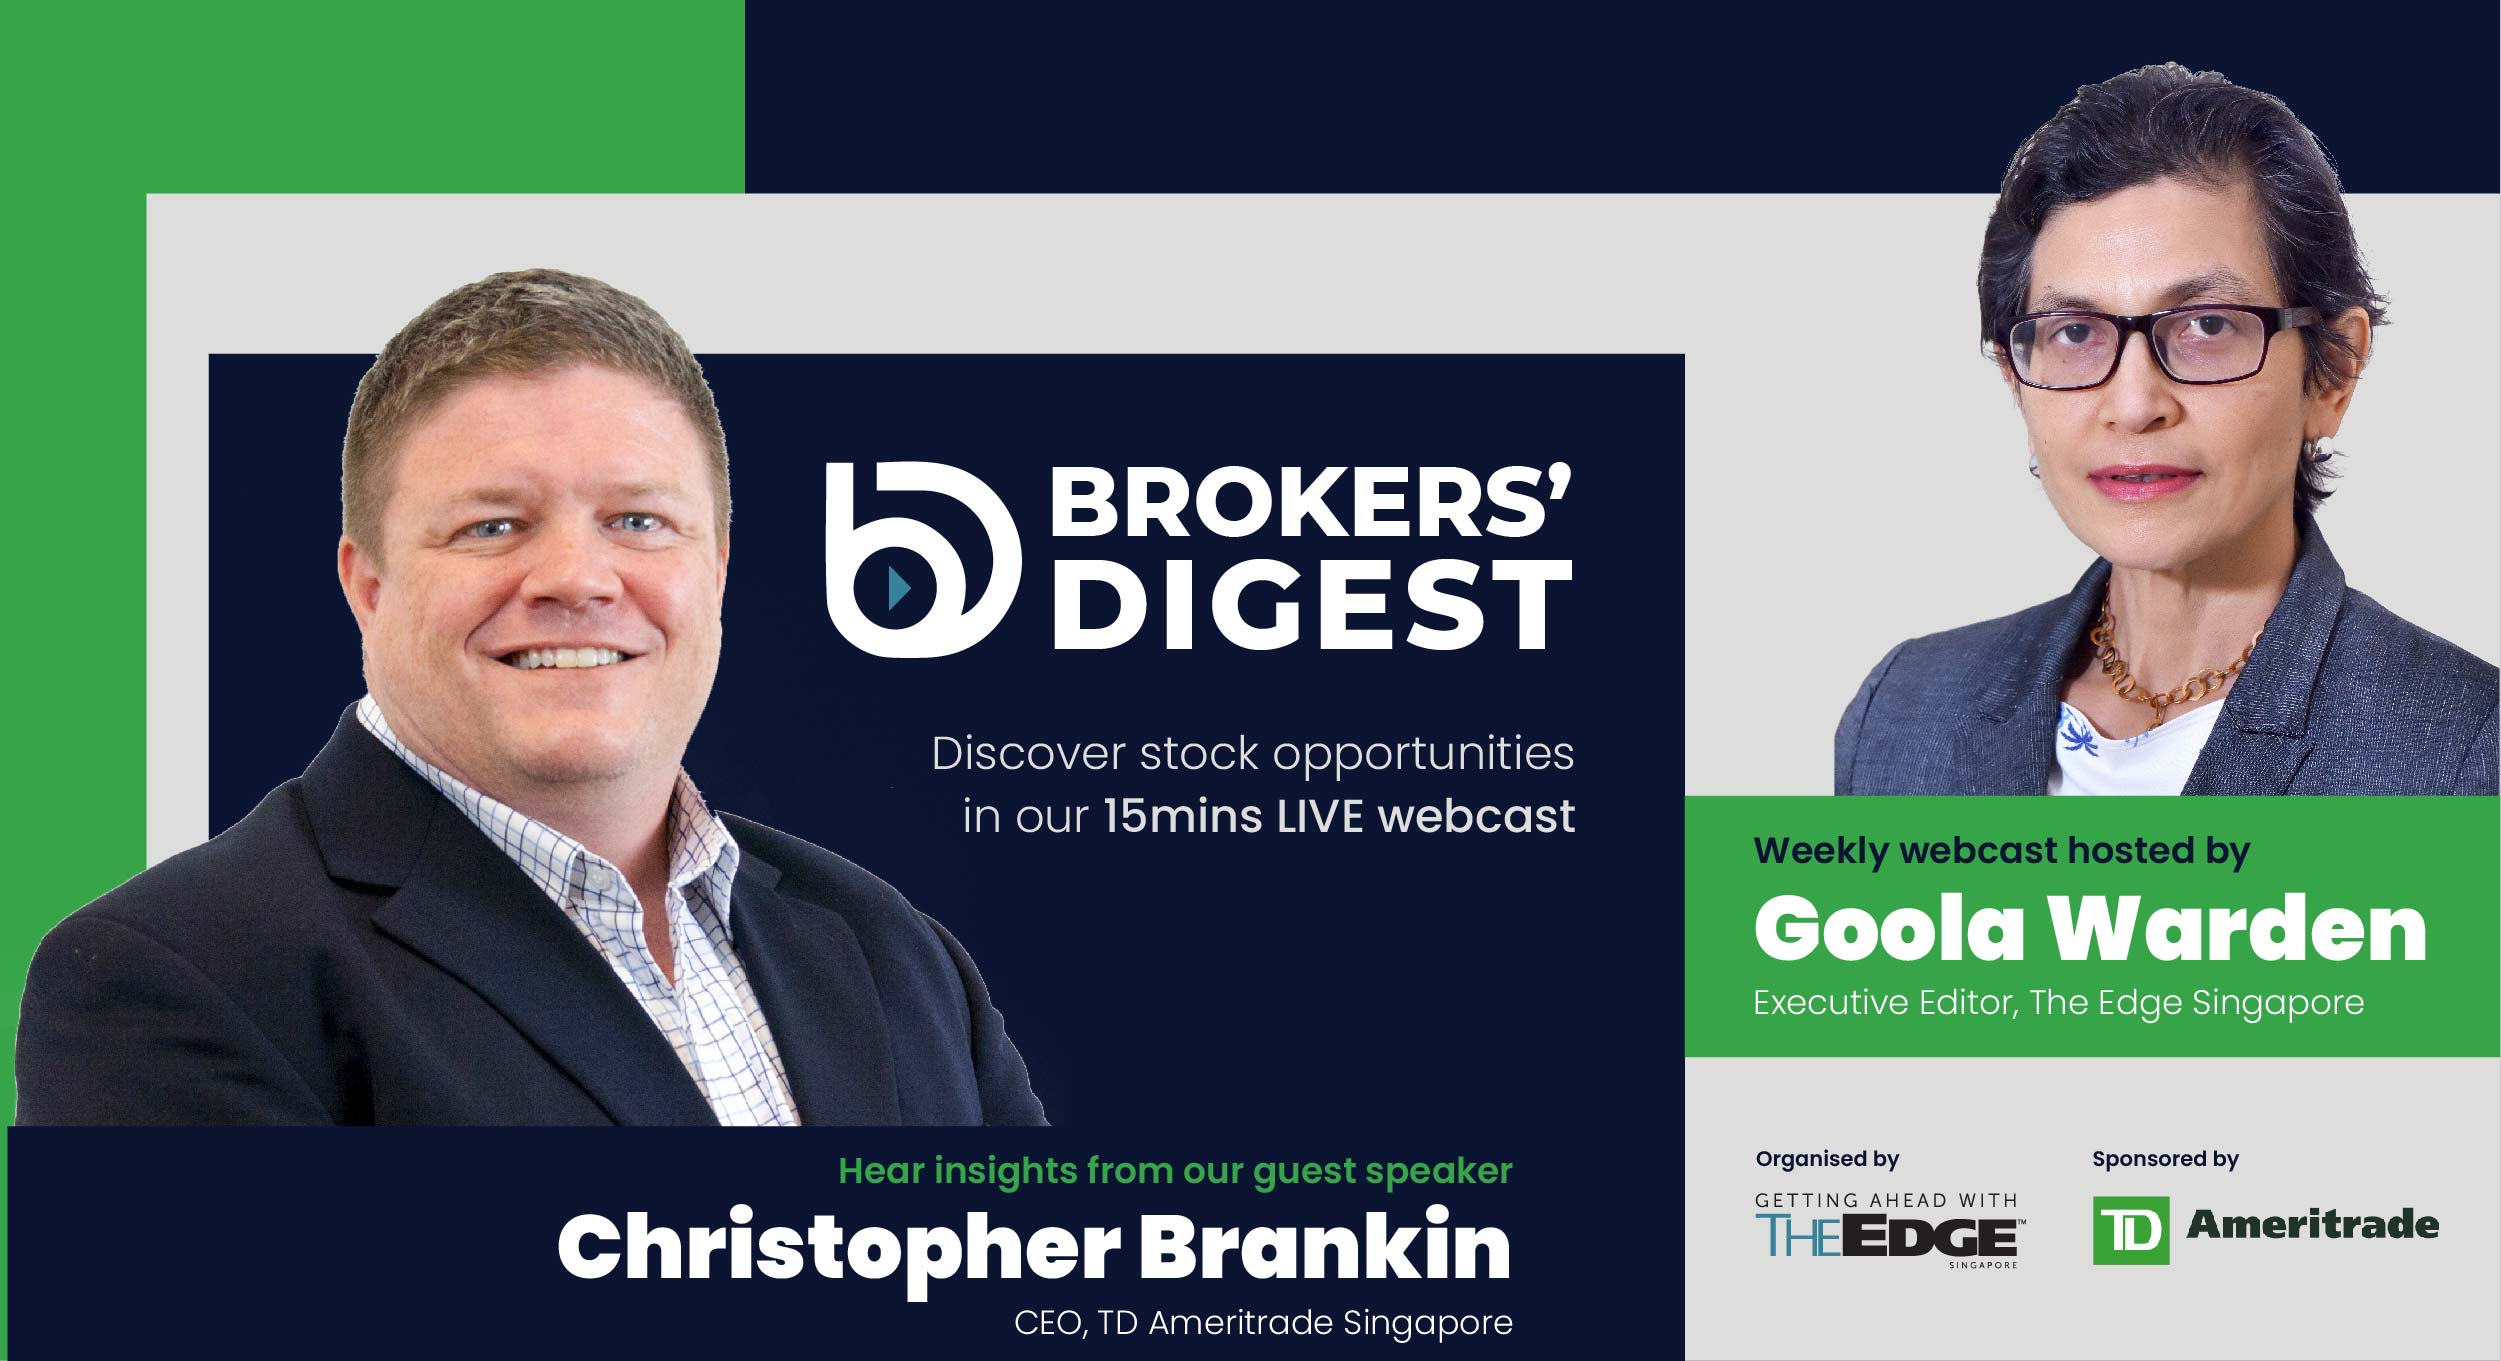 The Edge Singapore launches the all-new Brokers' Digest LIVE webcast series